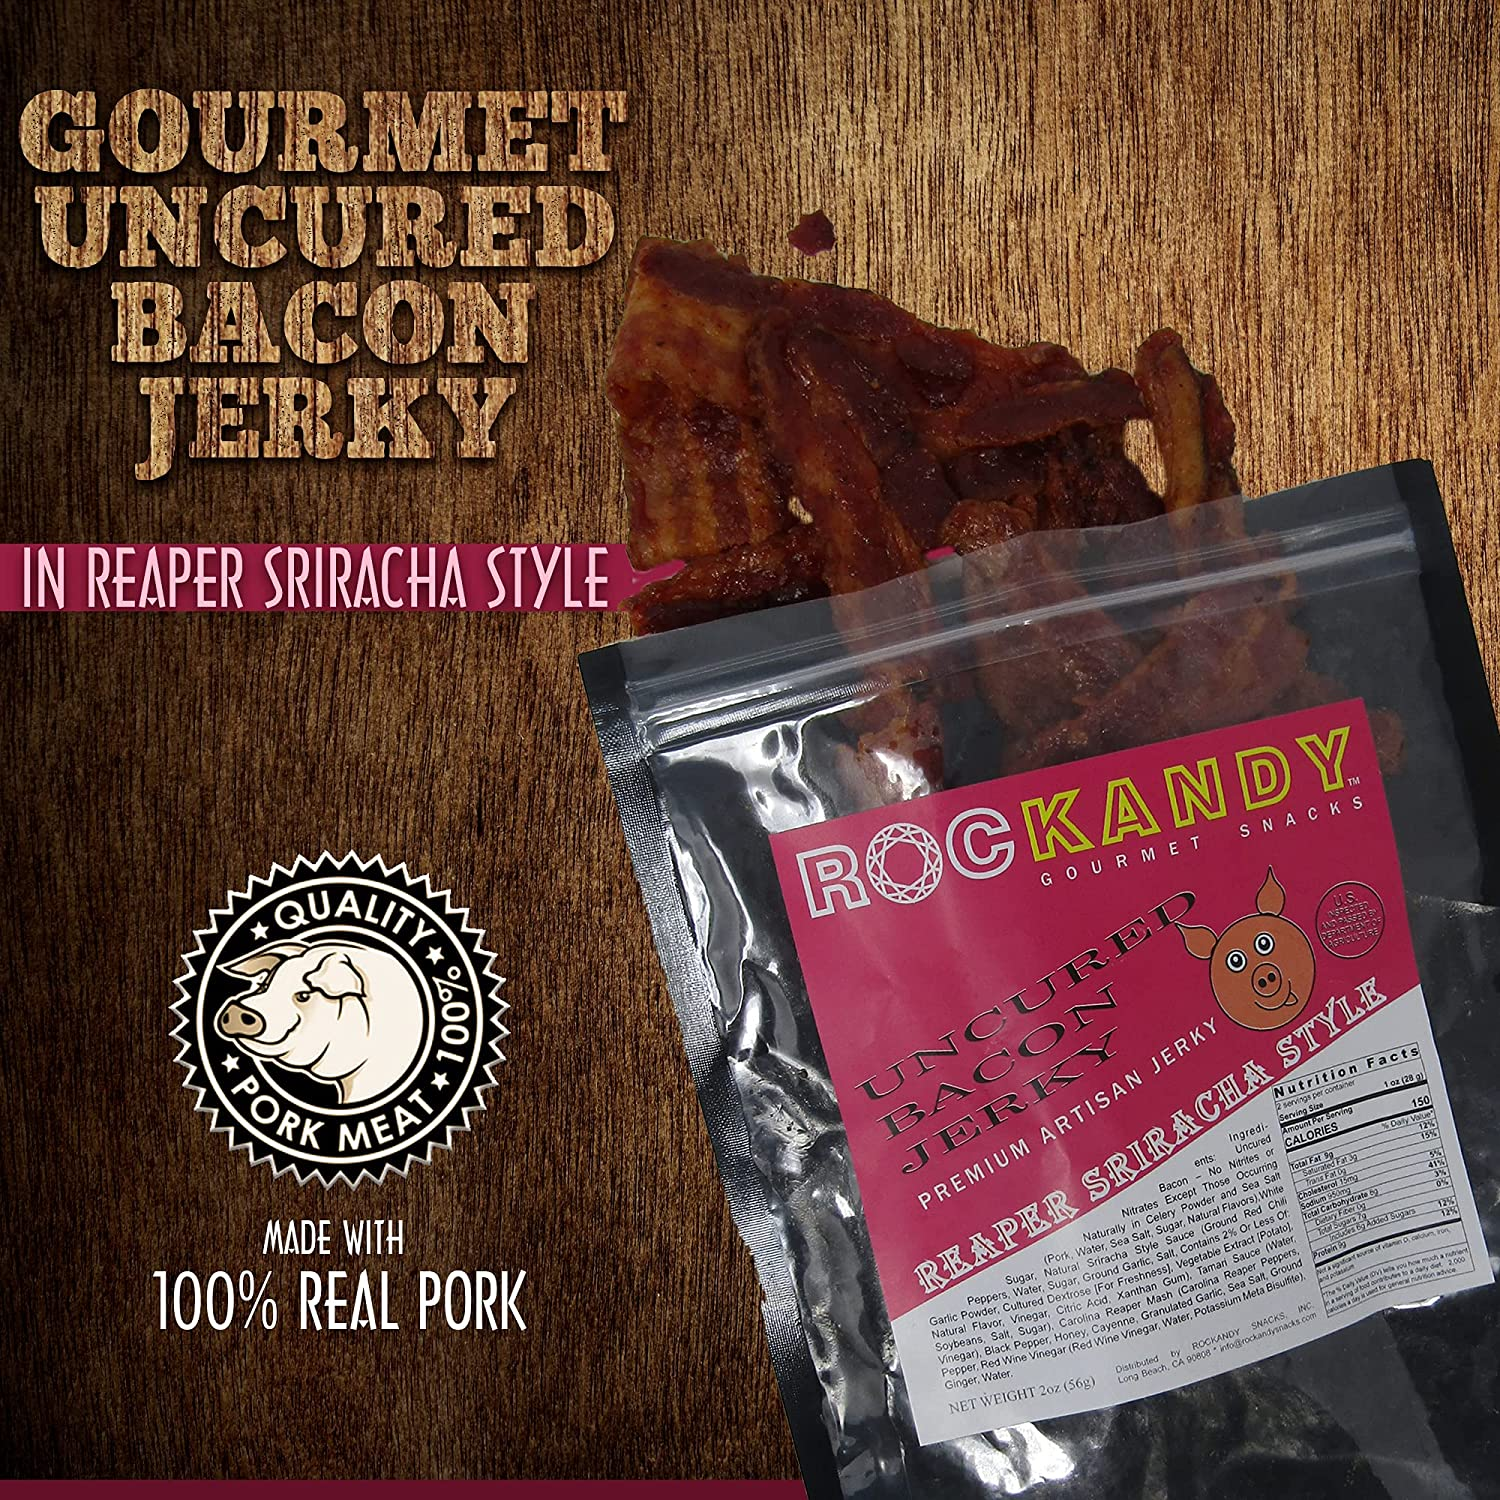 RocKandy Premium REAPER SRIRACHA BACON JERKY Ranking Some reservation TOP12 5 PACK 9g Prot of